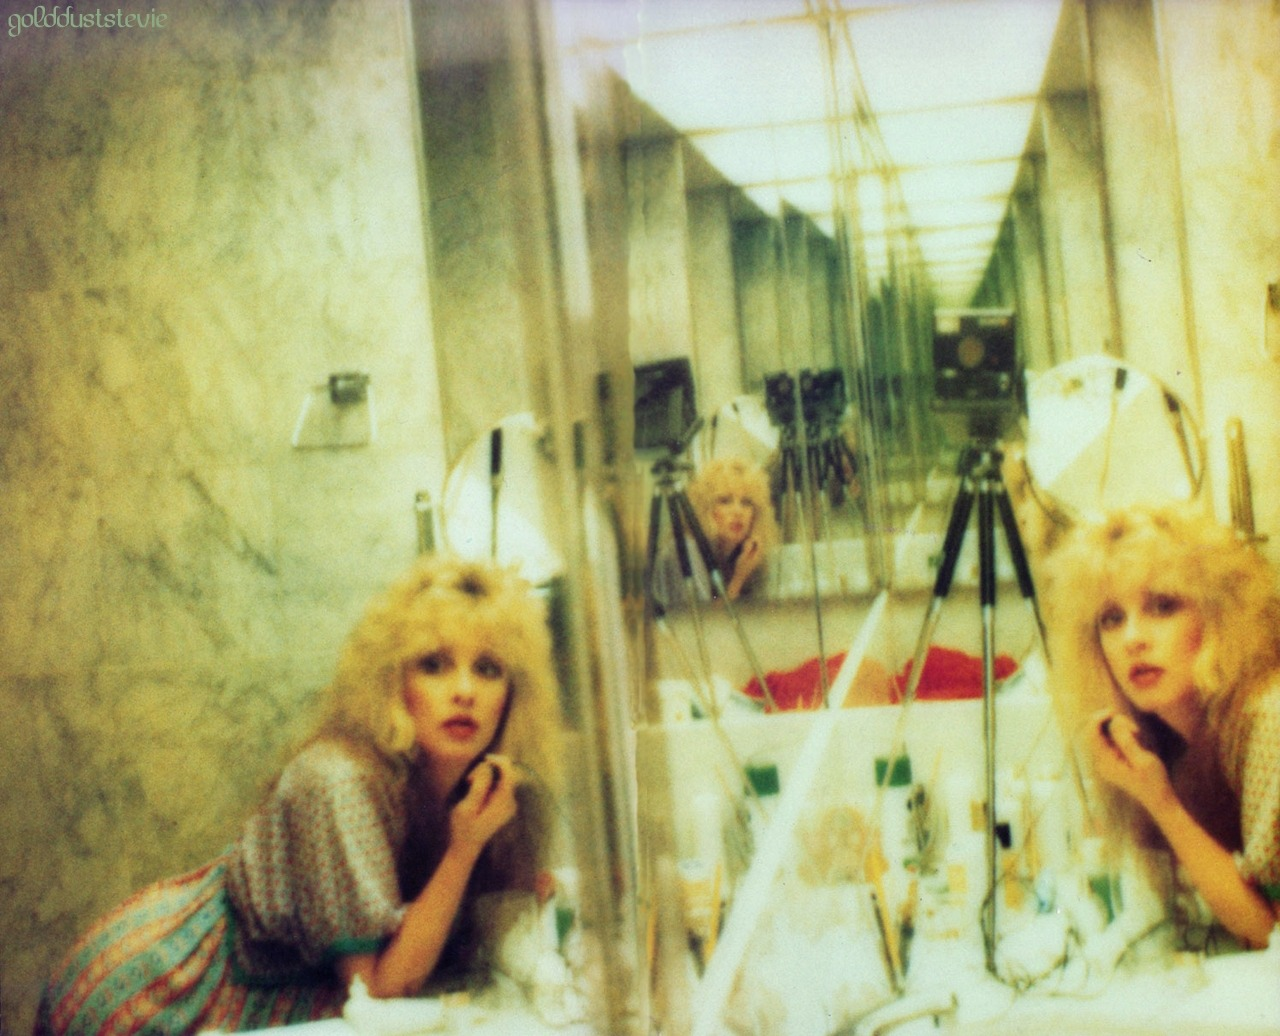 rookiemag:  Stevie Nicks bathroom selfie, old school polaroid style -Jessica H. via goldduststevie: